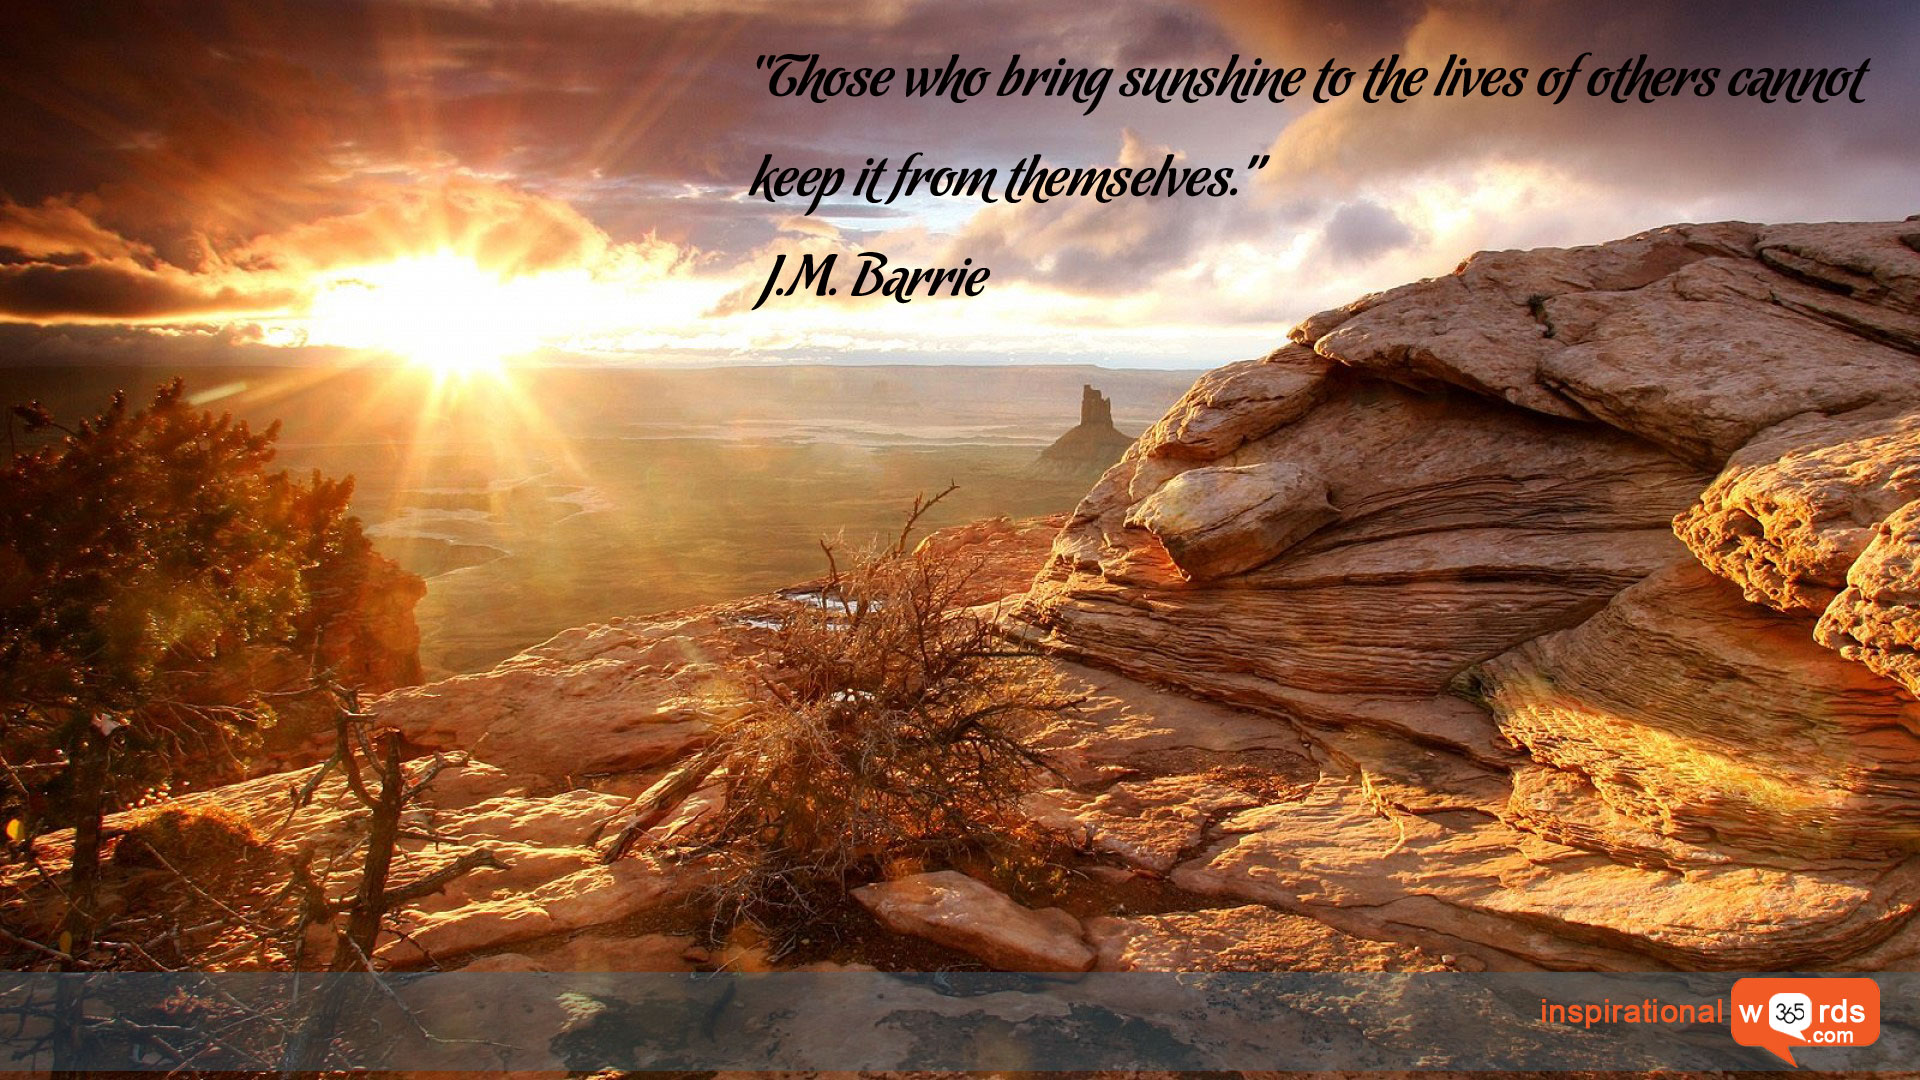 Inspirational Wallpaper Quote by J. M. Barrie